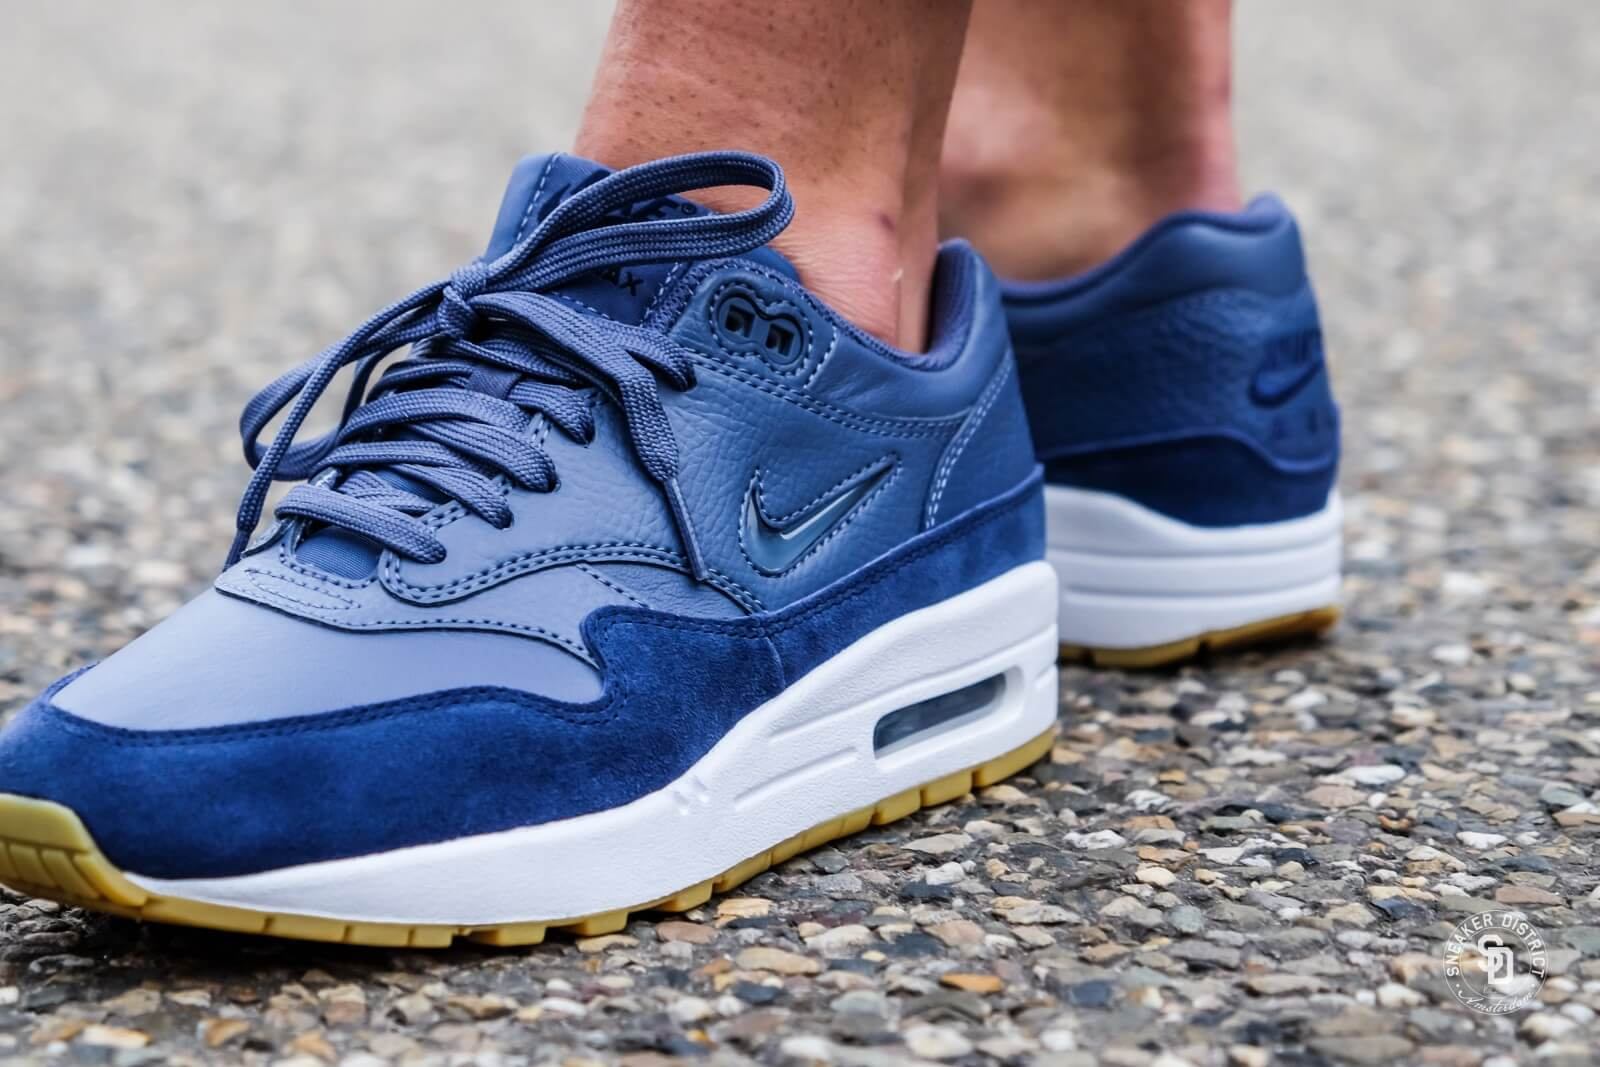 separation shoes 5515f 69c11 ... france switzerland nike womens air max 1 premium sc diffused blue navy  49e0e e6256 5936e a5316